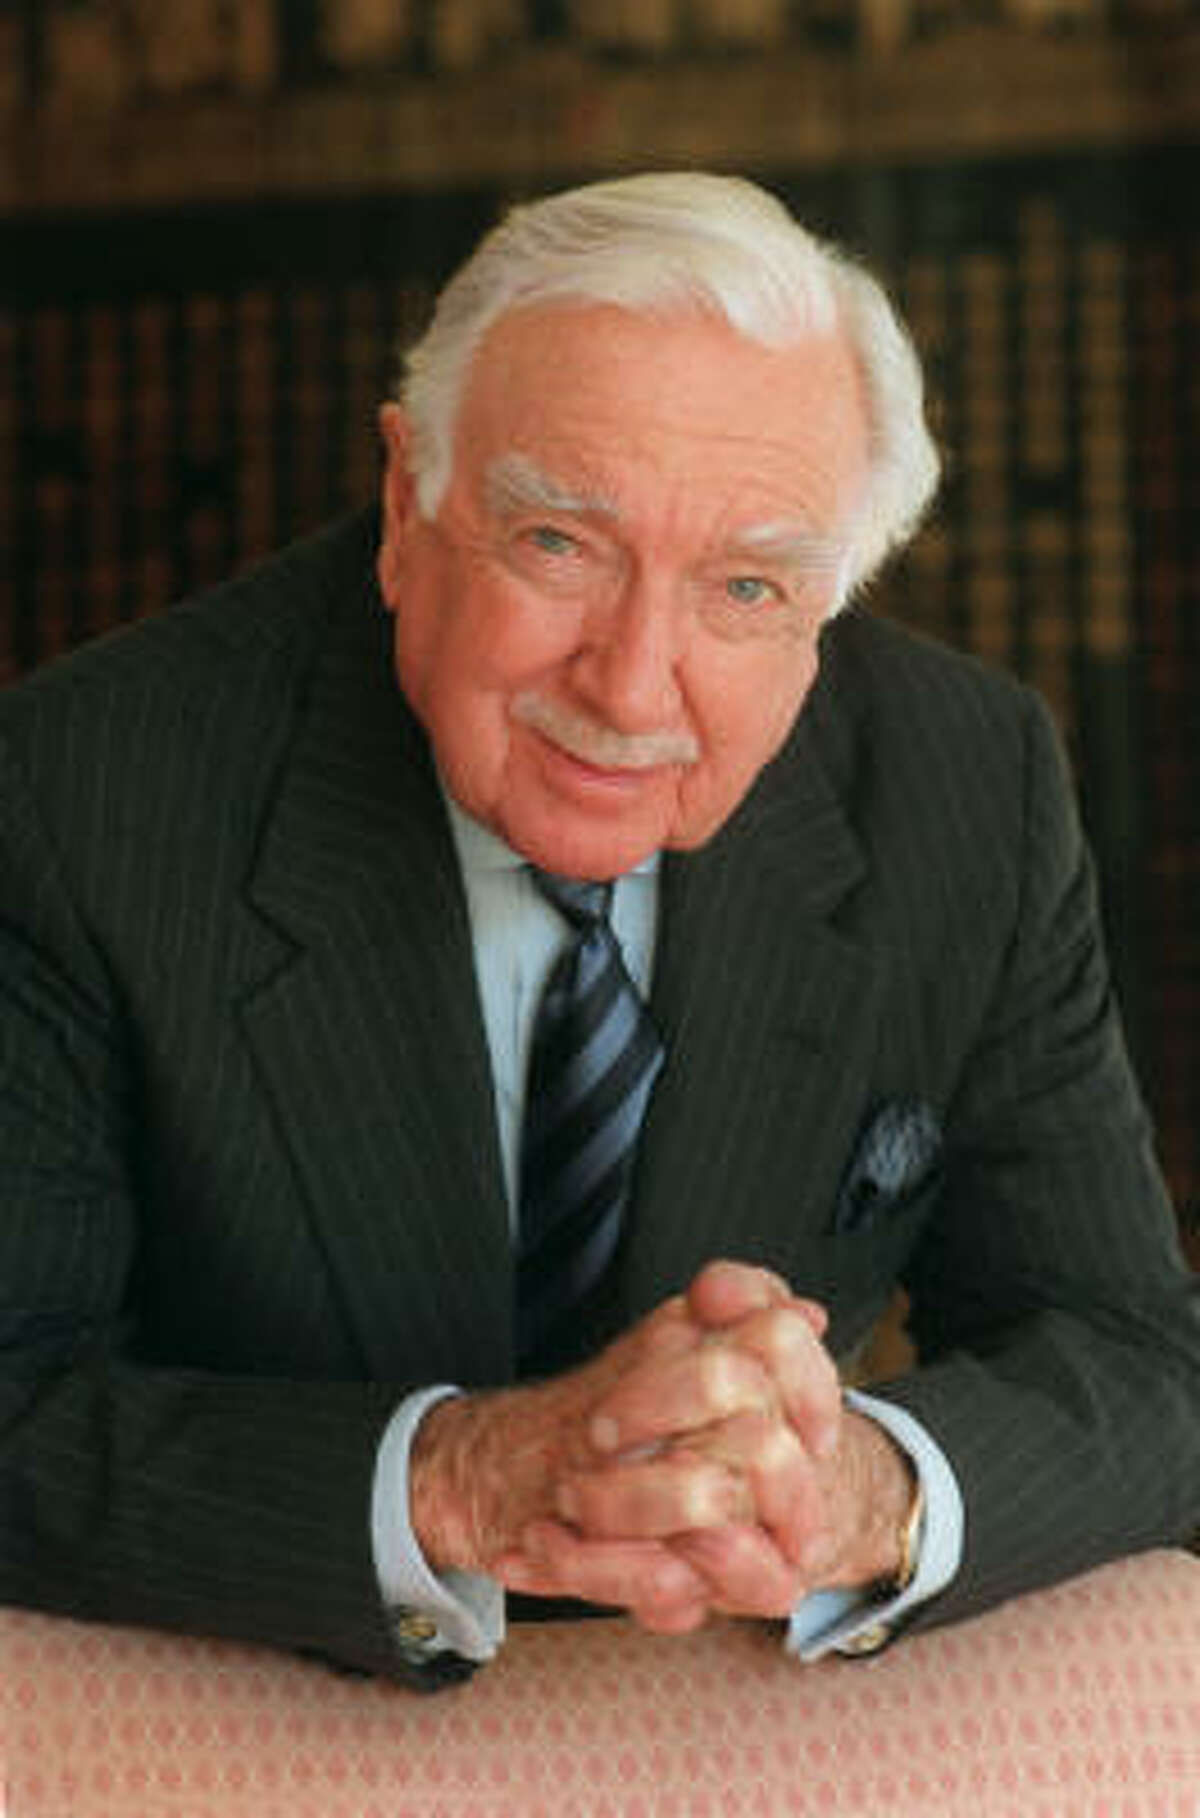 Walter Cronkite, whose sign-off,